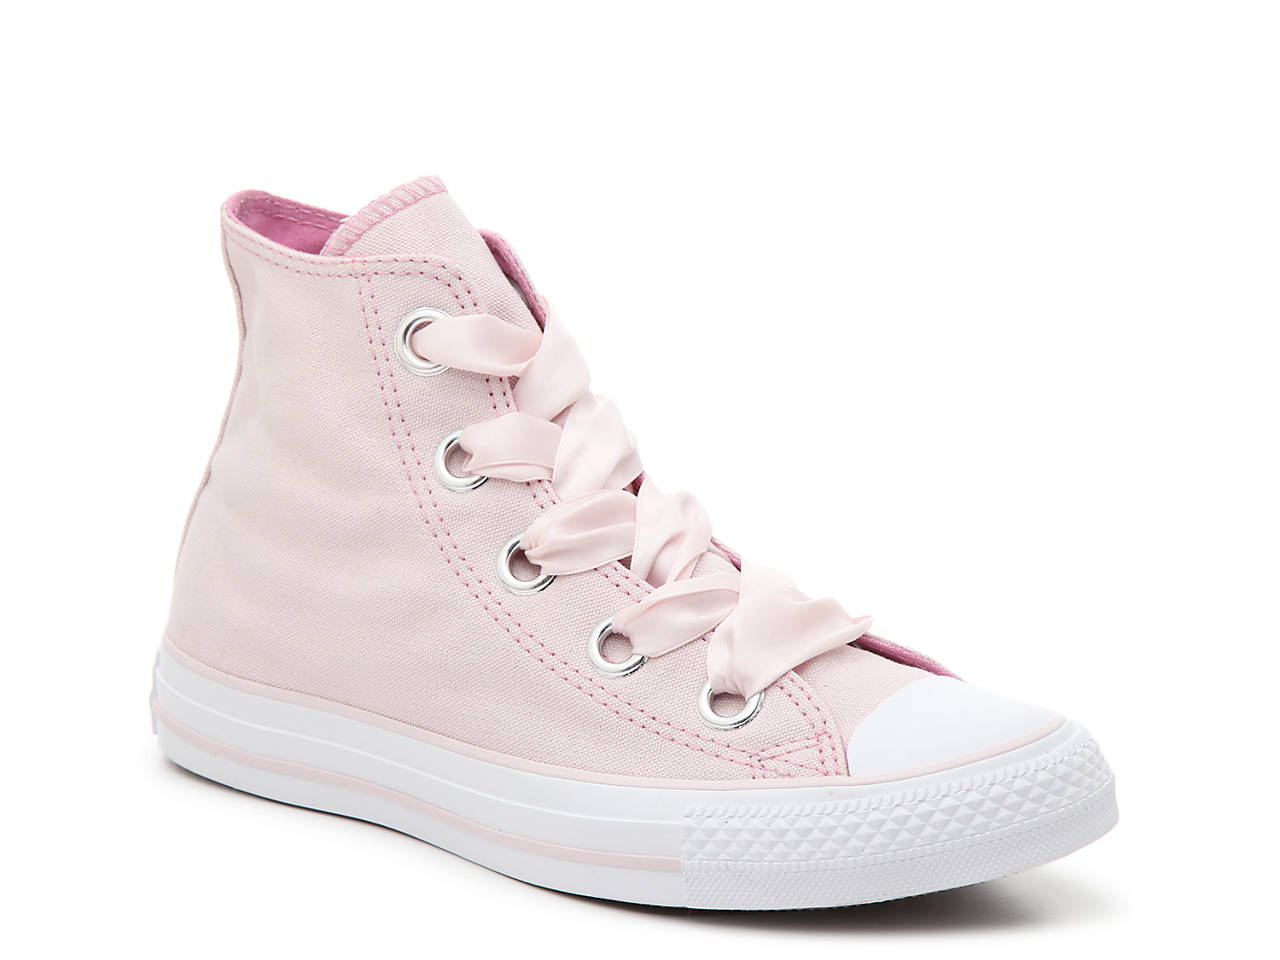 Converse Chuck Taylor All Star Ribbon High-Top Sneaker - Women s ... fb3e306e6